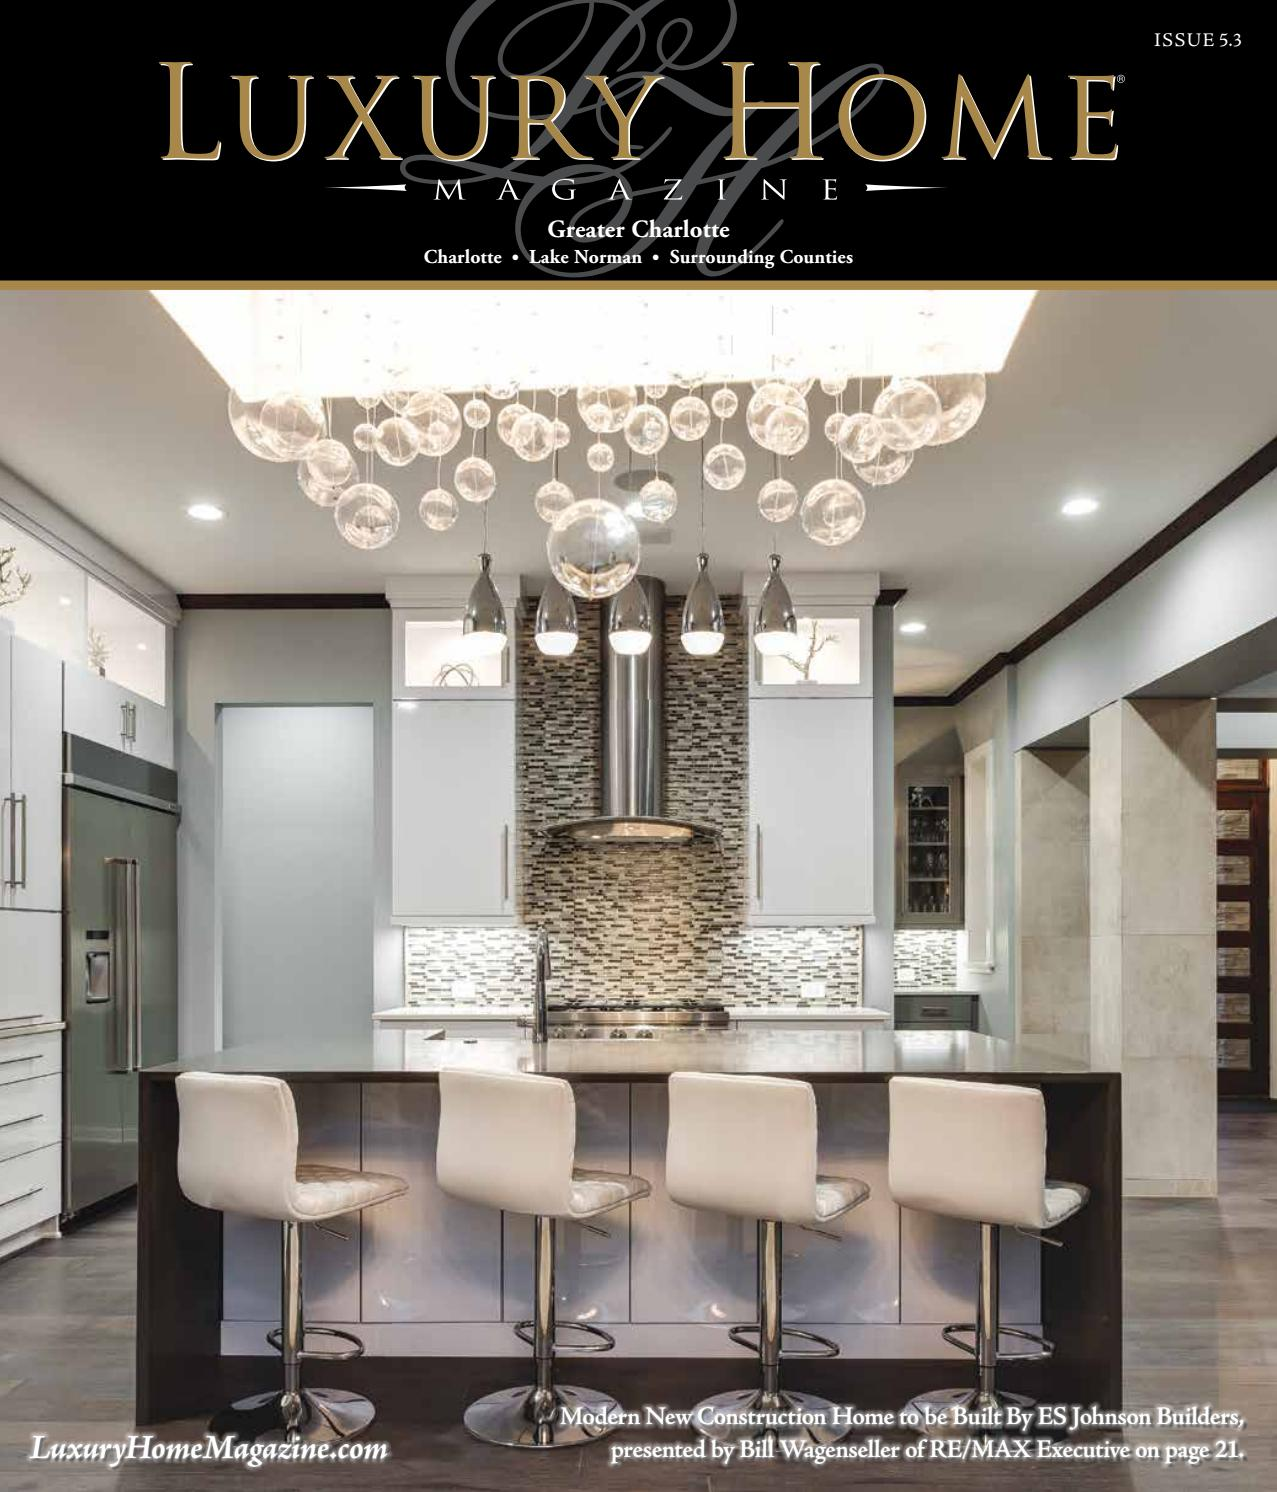 Lake Norman Luxury Homes: Luxury Home Magazine Greater Charlotte Issue 5.3 By Luxury